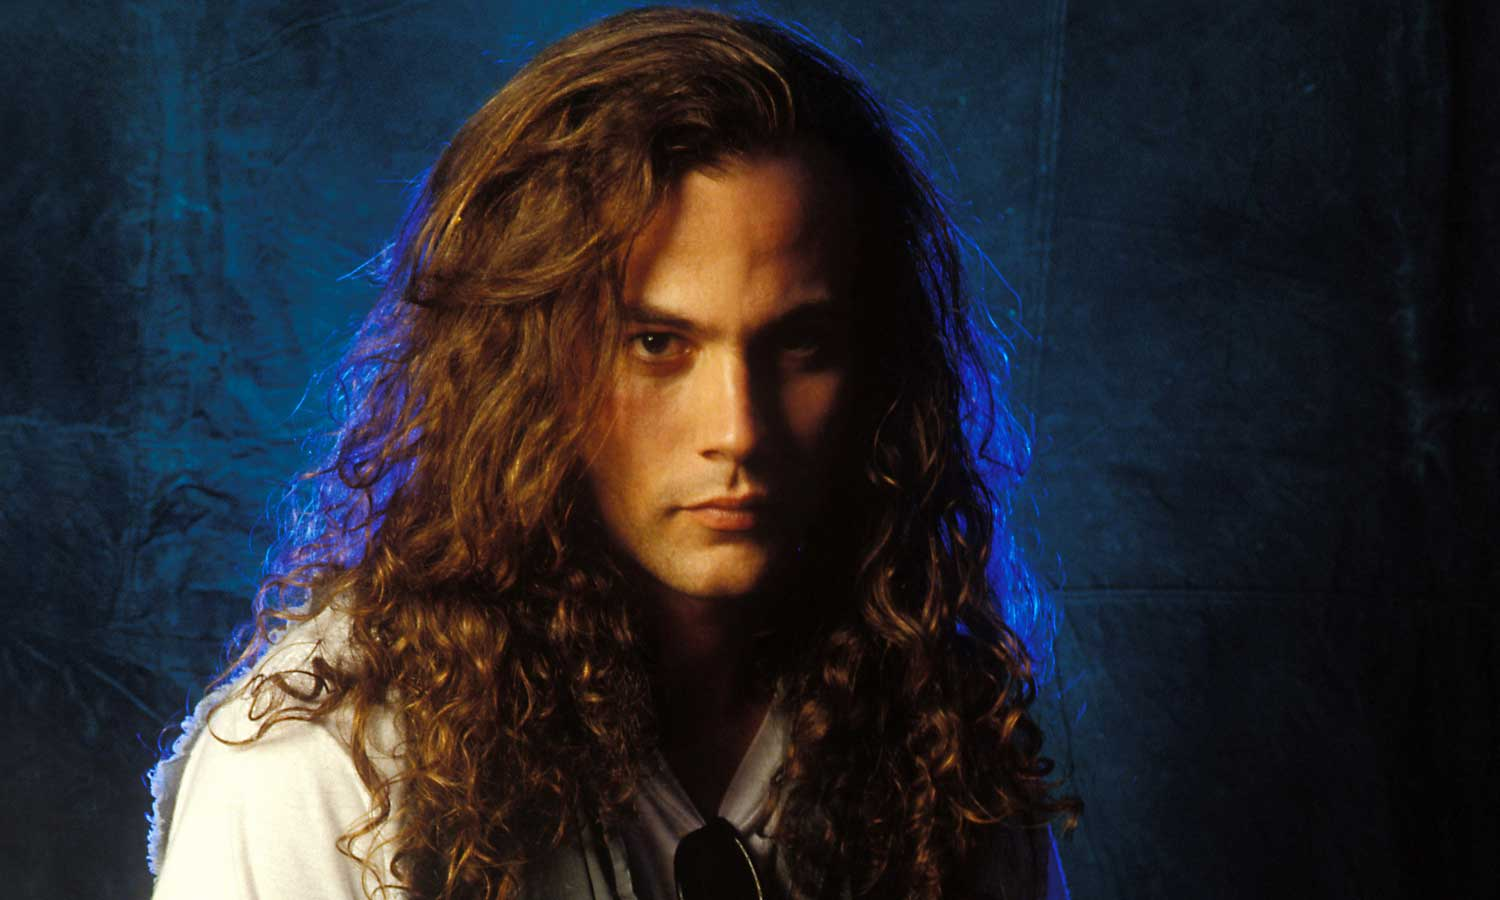 Rest in Peace Mike Starr - RememberLayne.com